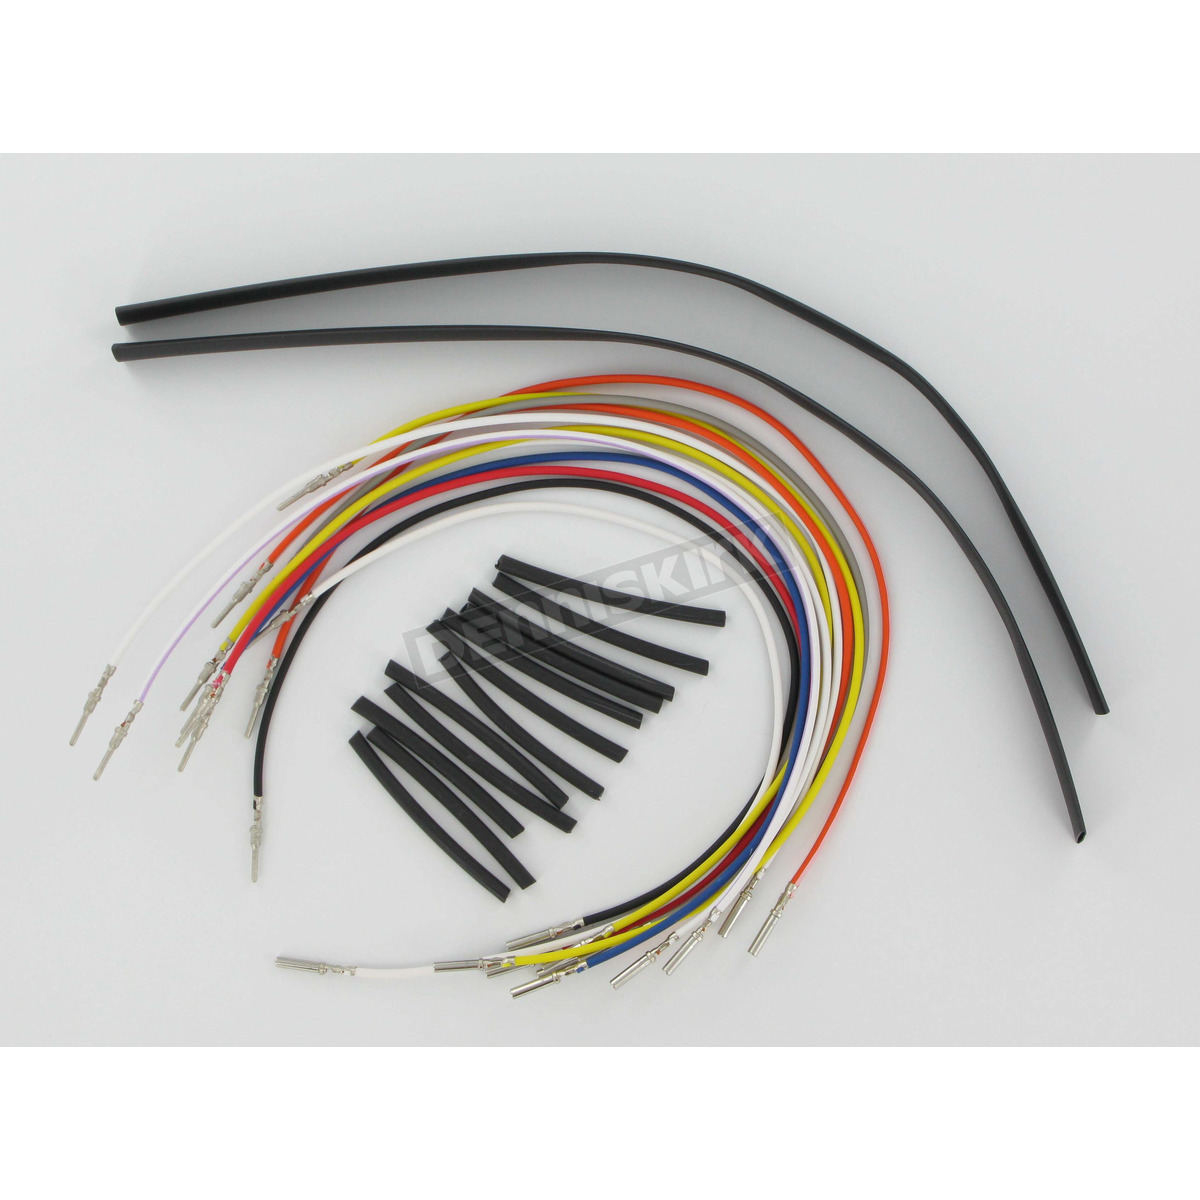 dk211741 novello 4 in handlebar wire harness extension kit nil wh4 harley davidson wiring harness extension at arjmand.co